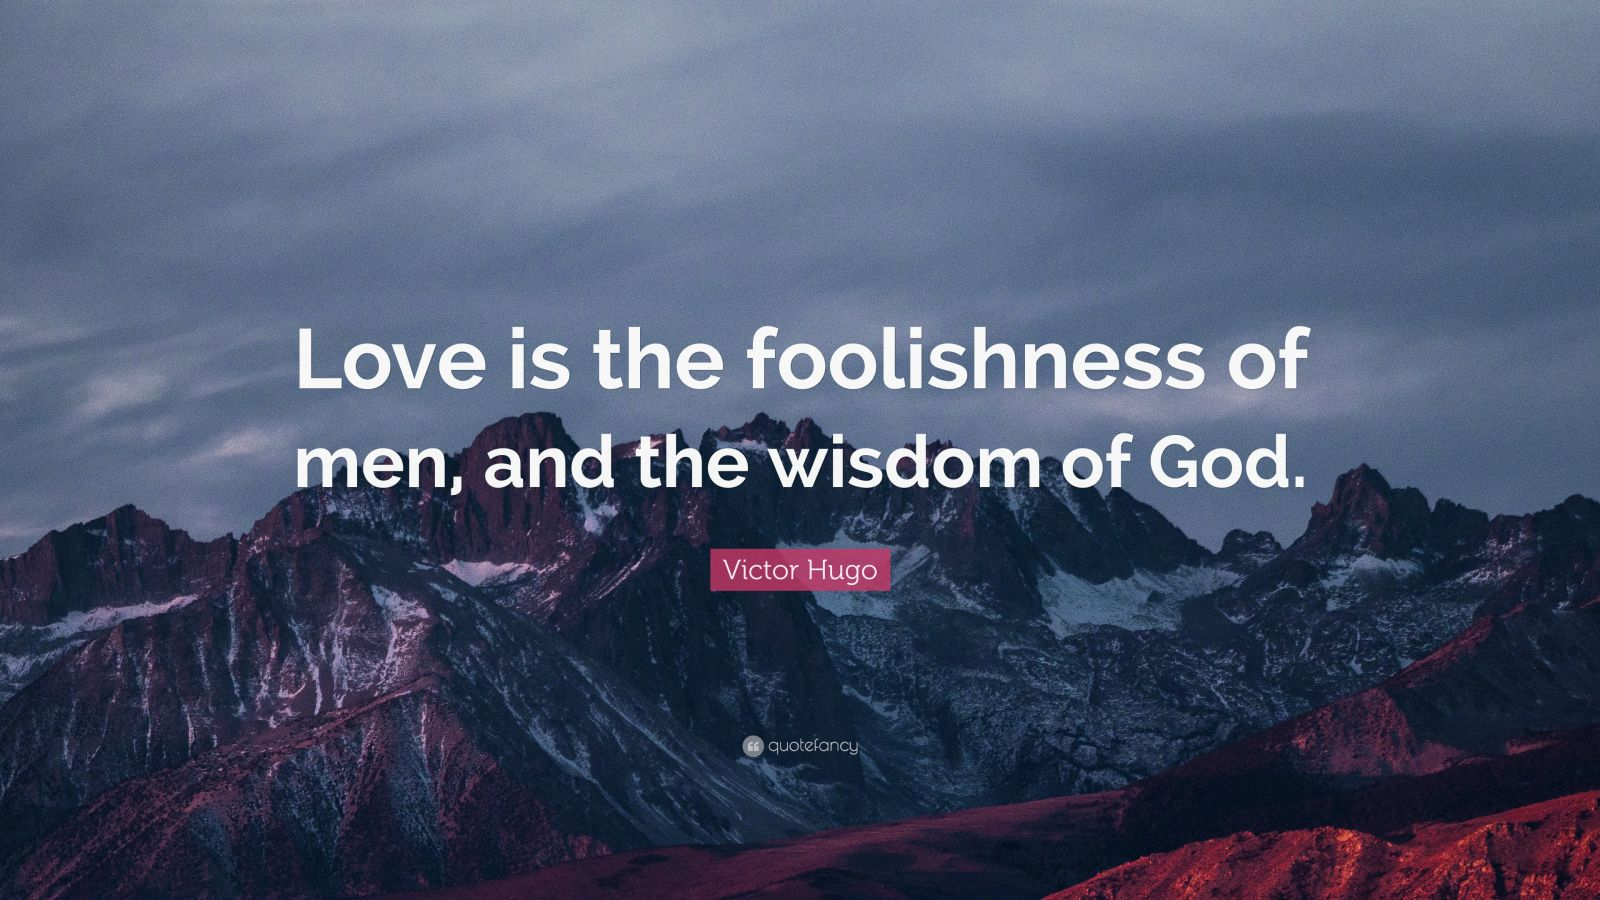 """Victor Hugo Quote: """"Love is the foolishness of men, and the wisdom of God."""""""